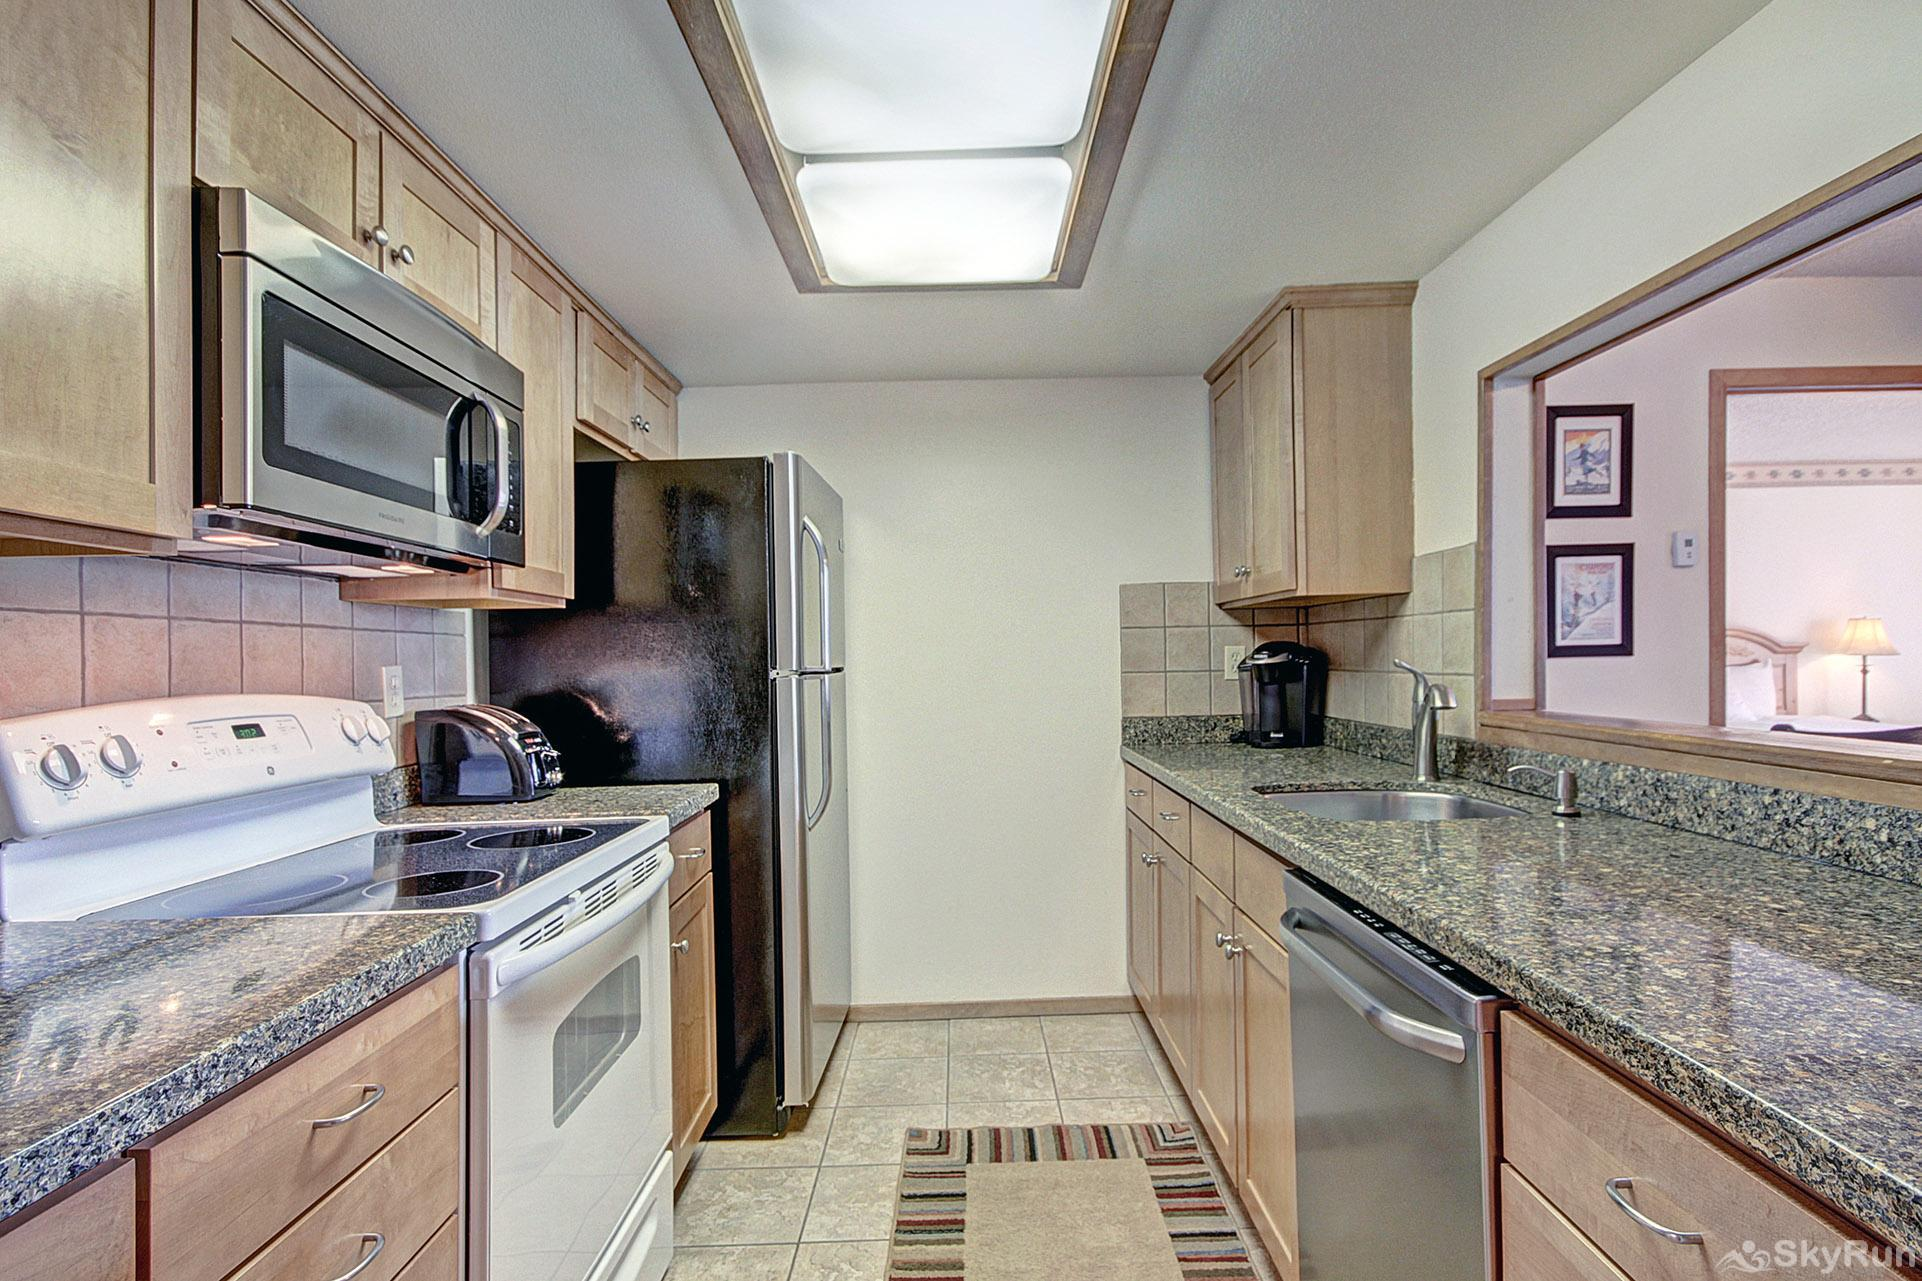 VS438 and 440H Village Square Beautiful Fully Equipped Kitchen